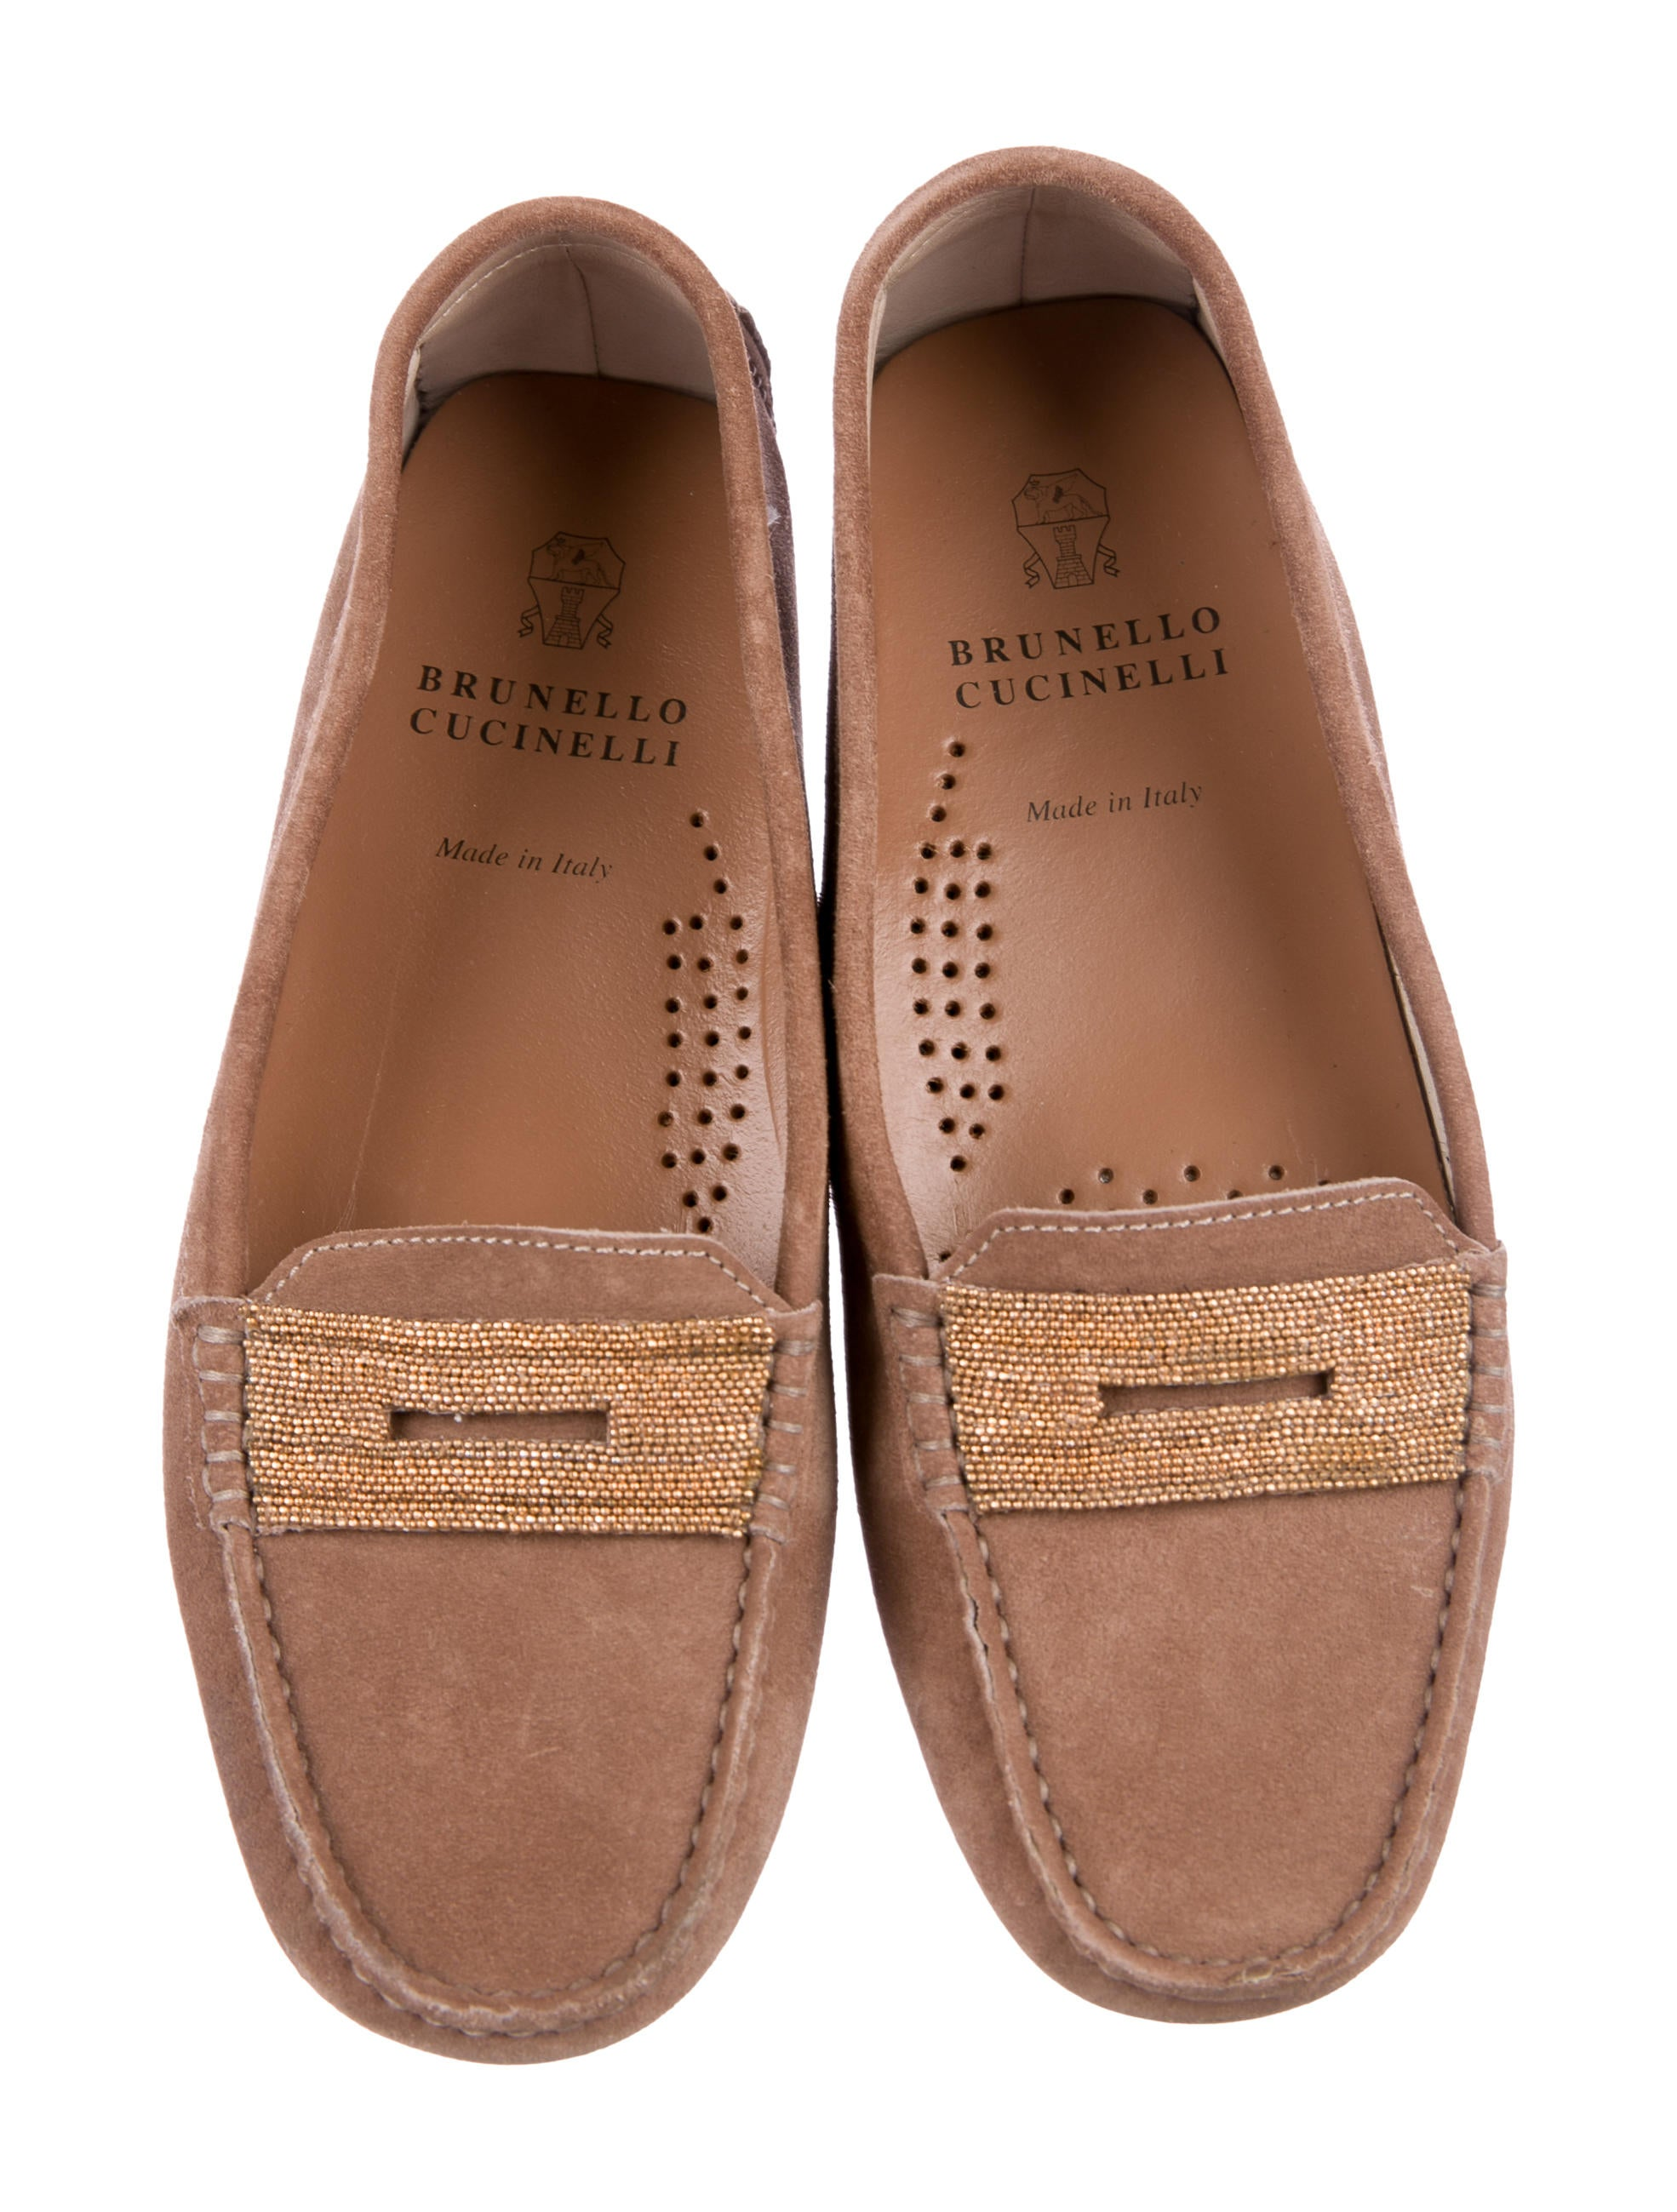 Brunello Cucinelli Monili Driving Loafers Inexpensive clearance clearance store outlet locations for sale cheap new styles m8QRguIEd